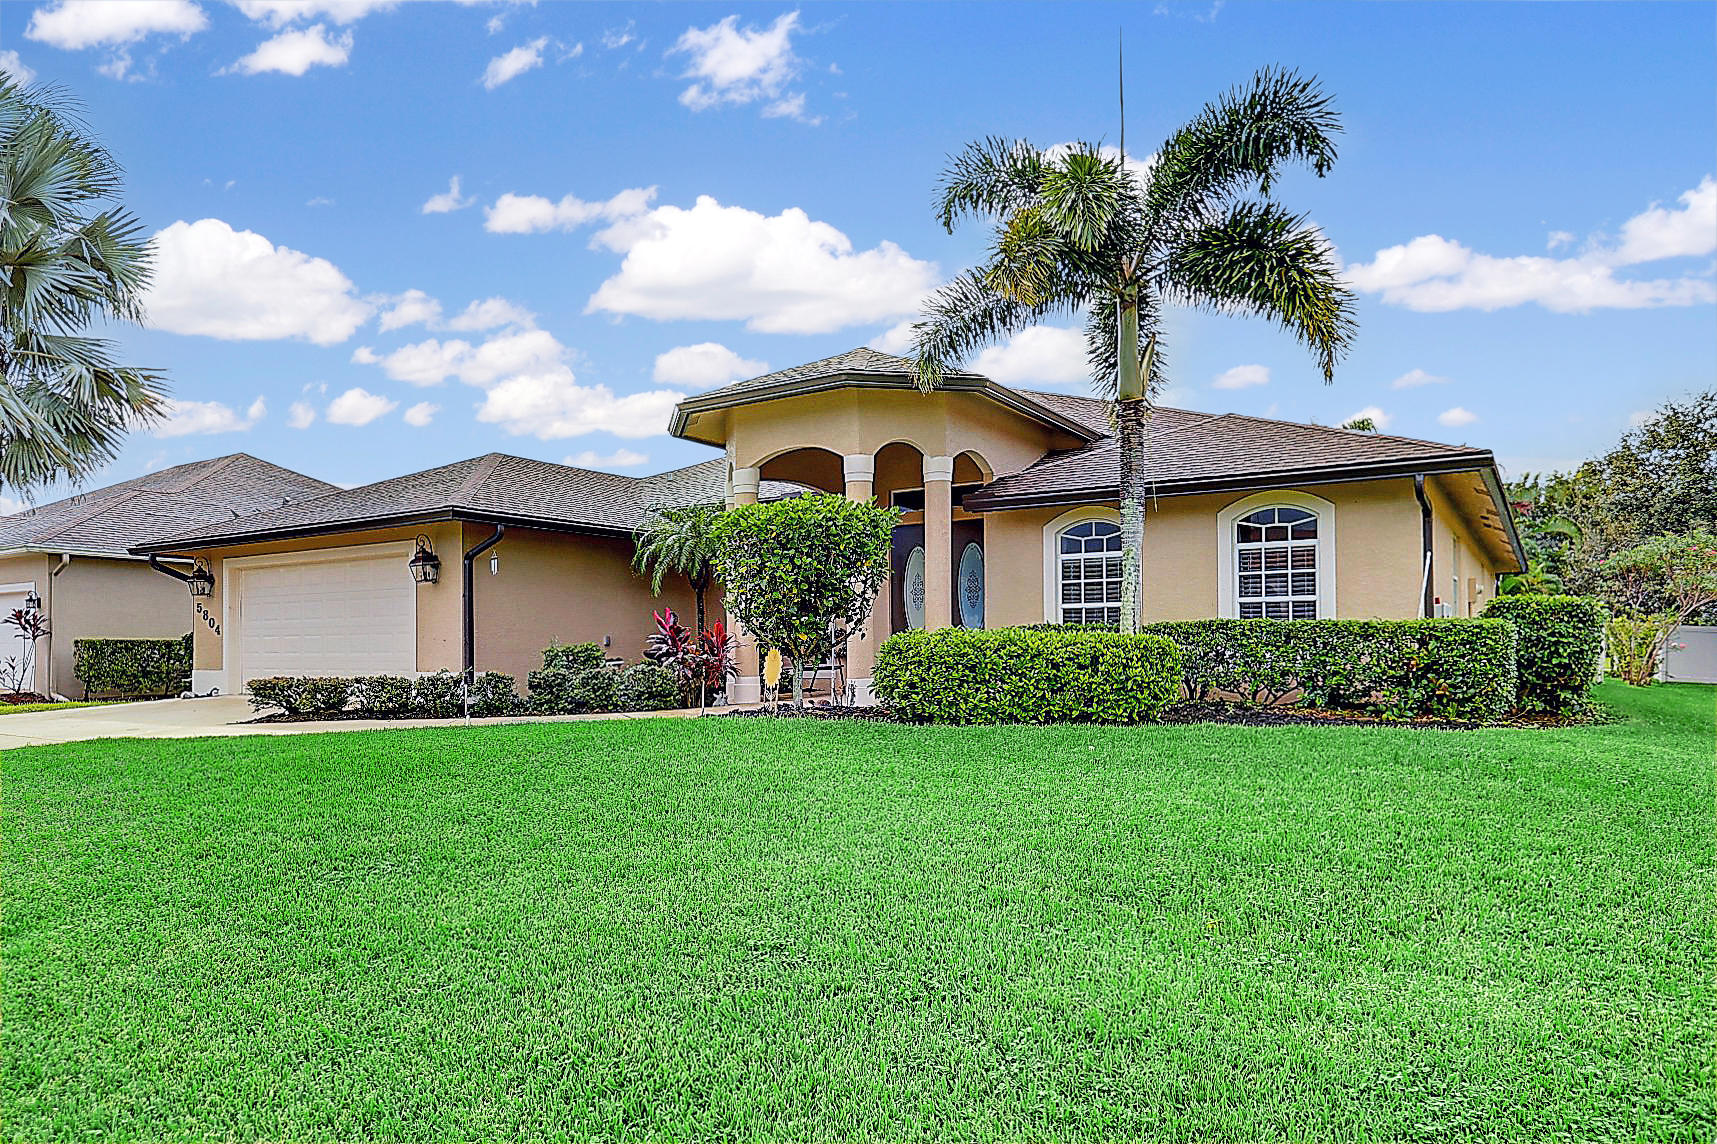 Details for 5804 Fall Flower Court Nw, Port Saint Lucie, FL 34986